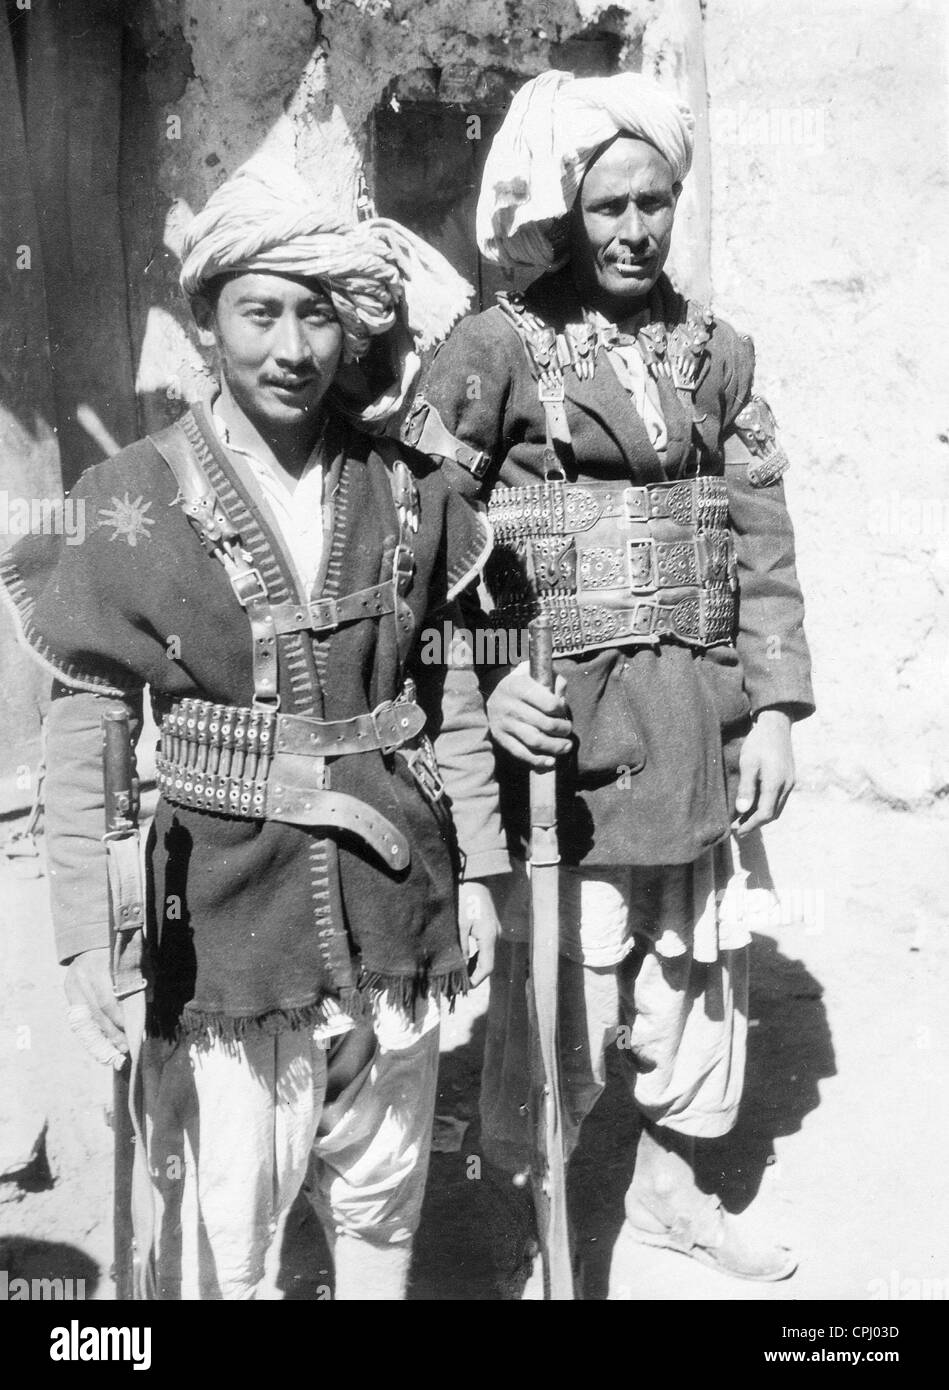 mongolian-ethnic-warriors-in-afghanistan